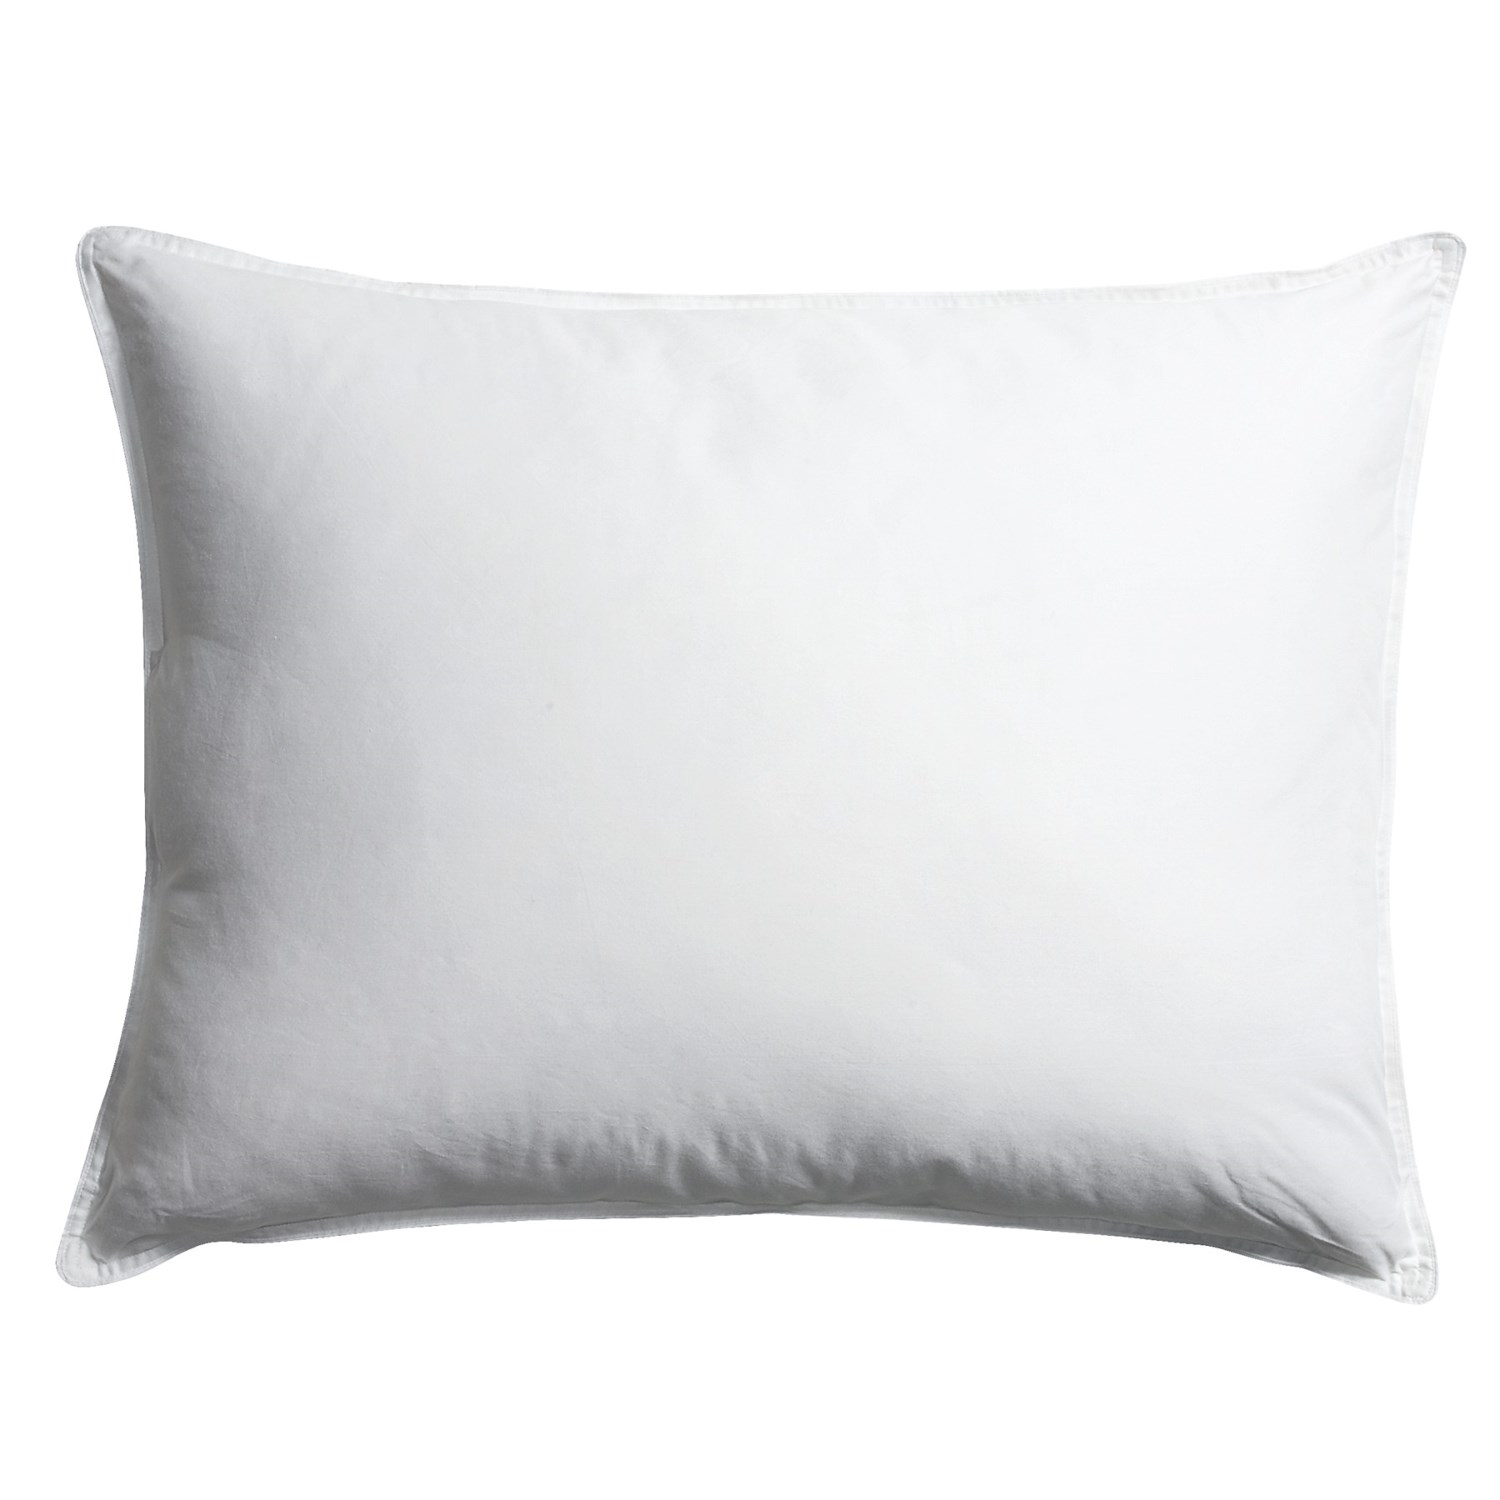 What Is The Standard Size Of A Pillow. How To Choose The Right Size Cushion Insert EBay ...